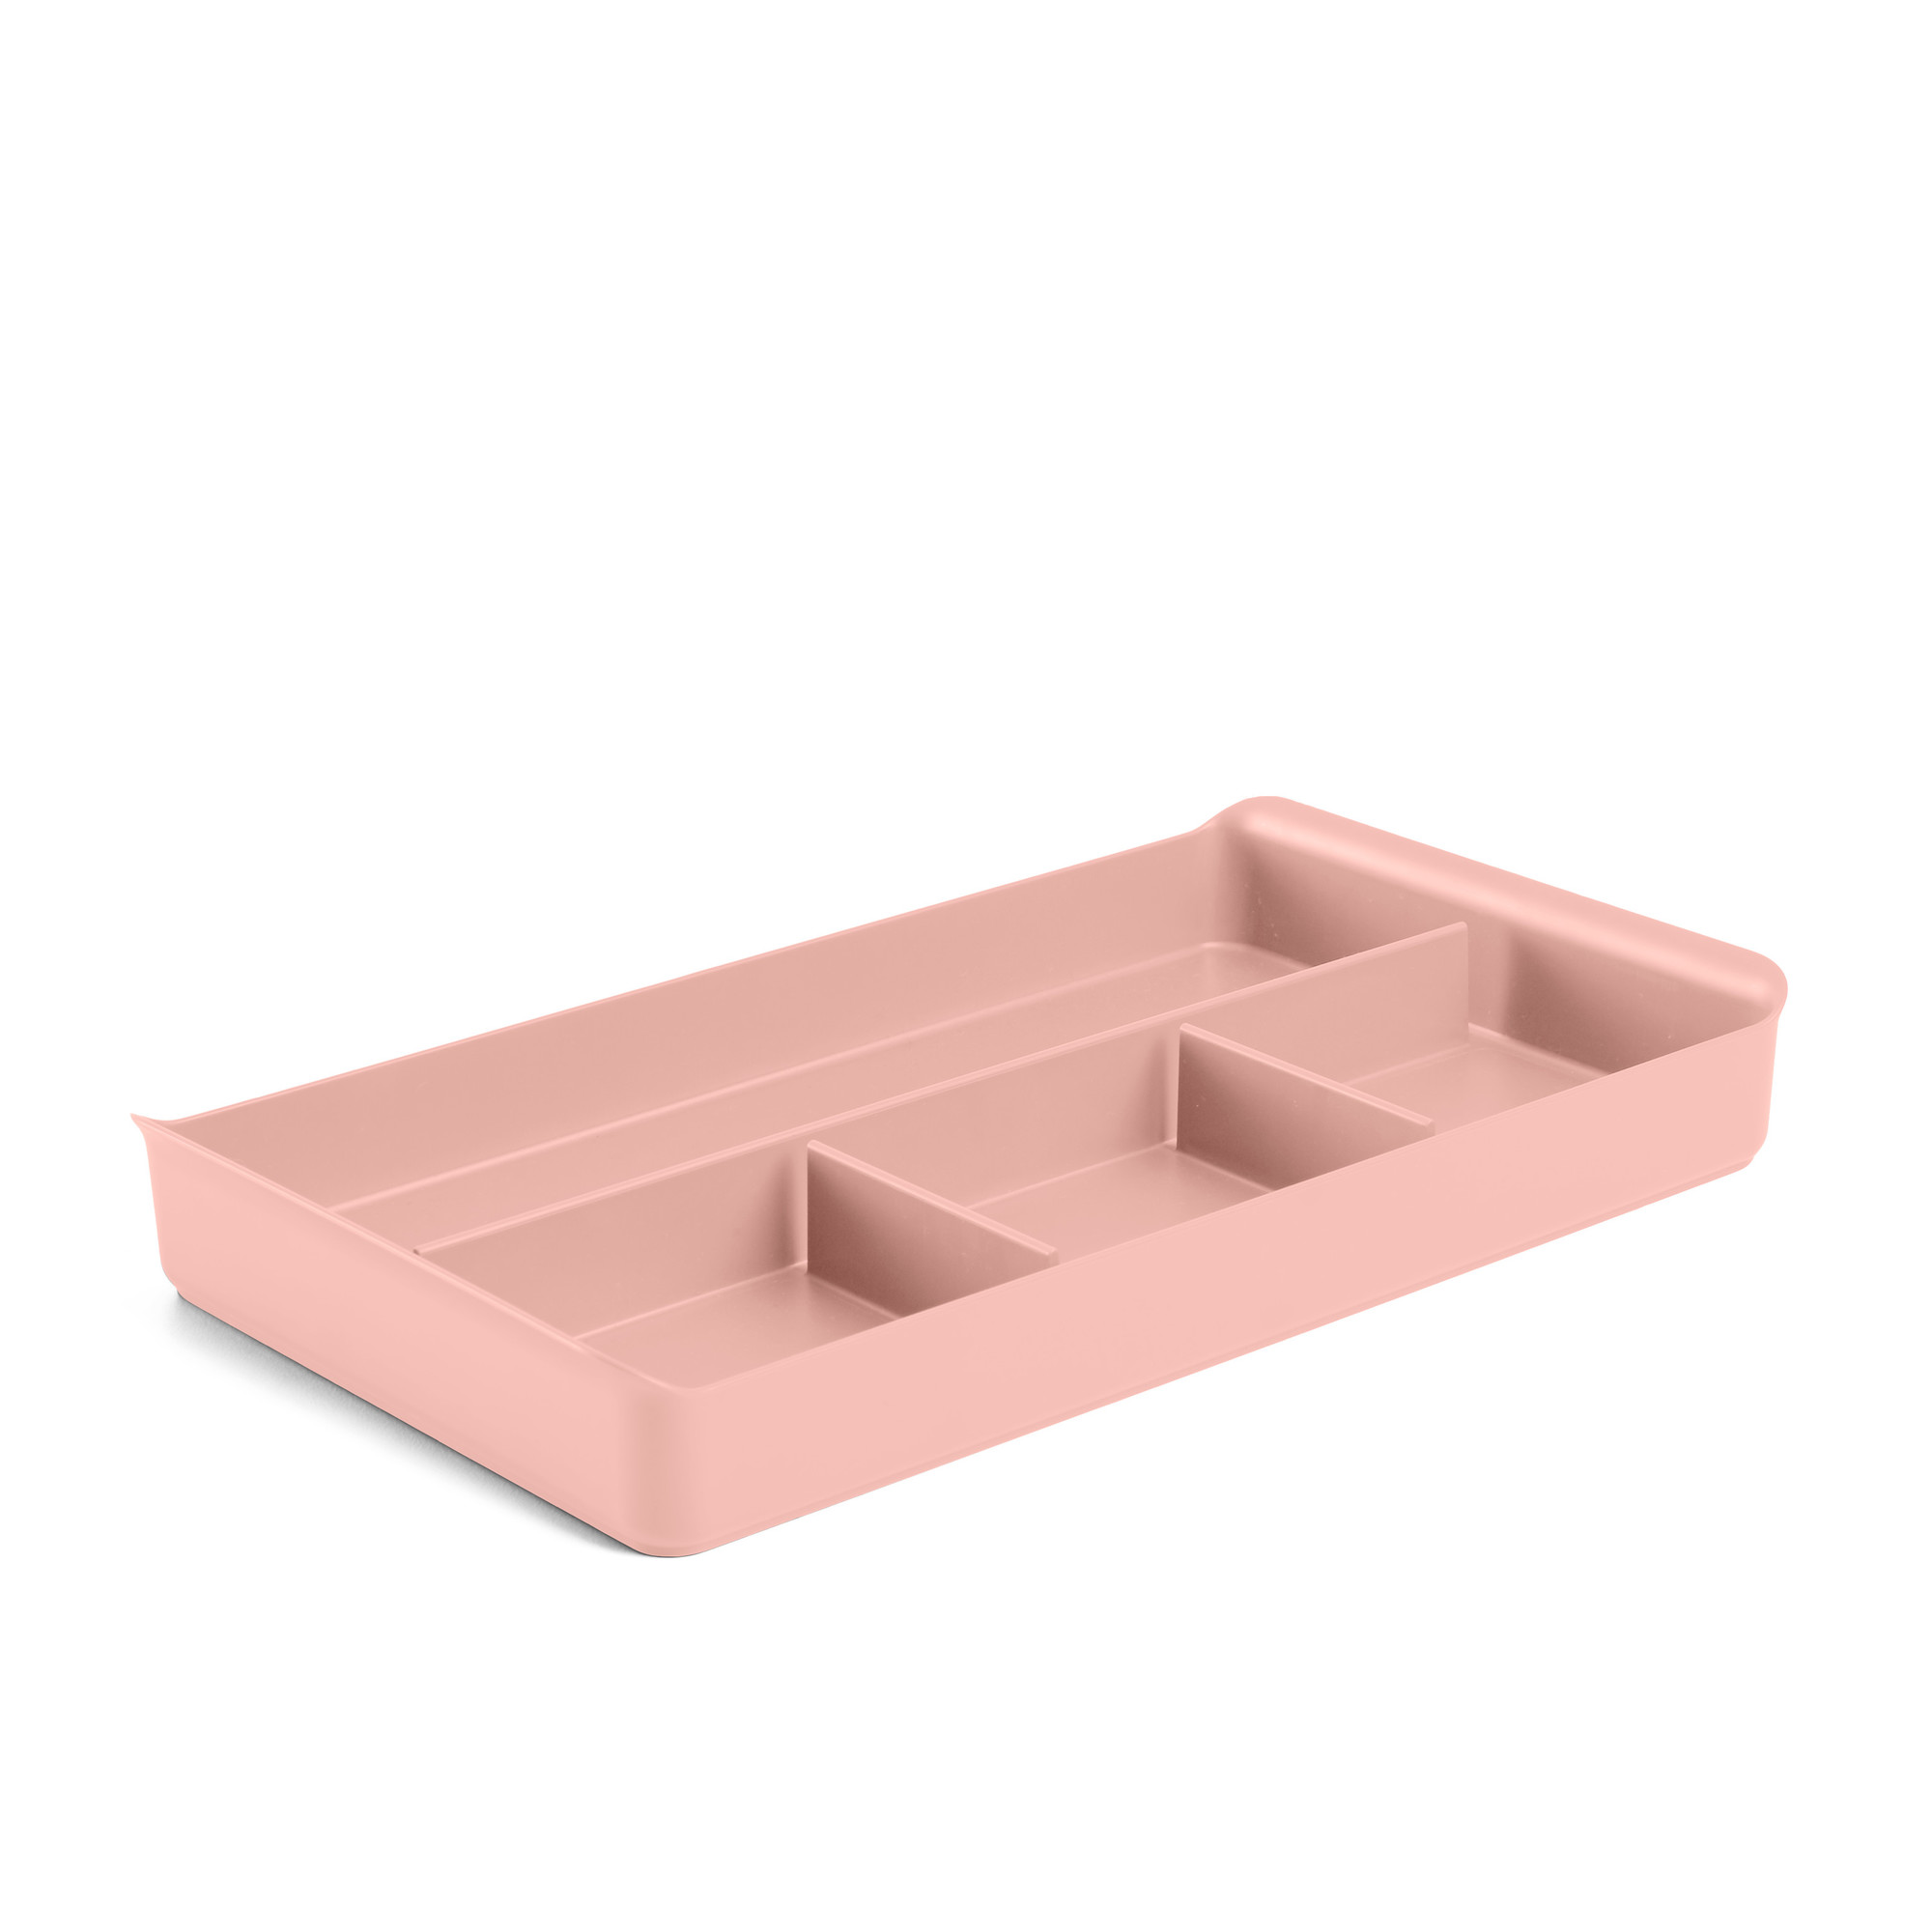 Blush Drawer Organizer  File Cabinet Organization  Poppin